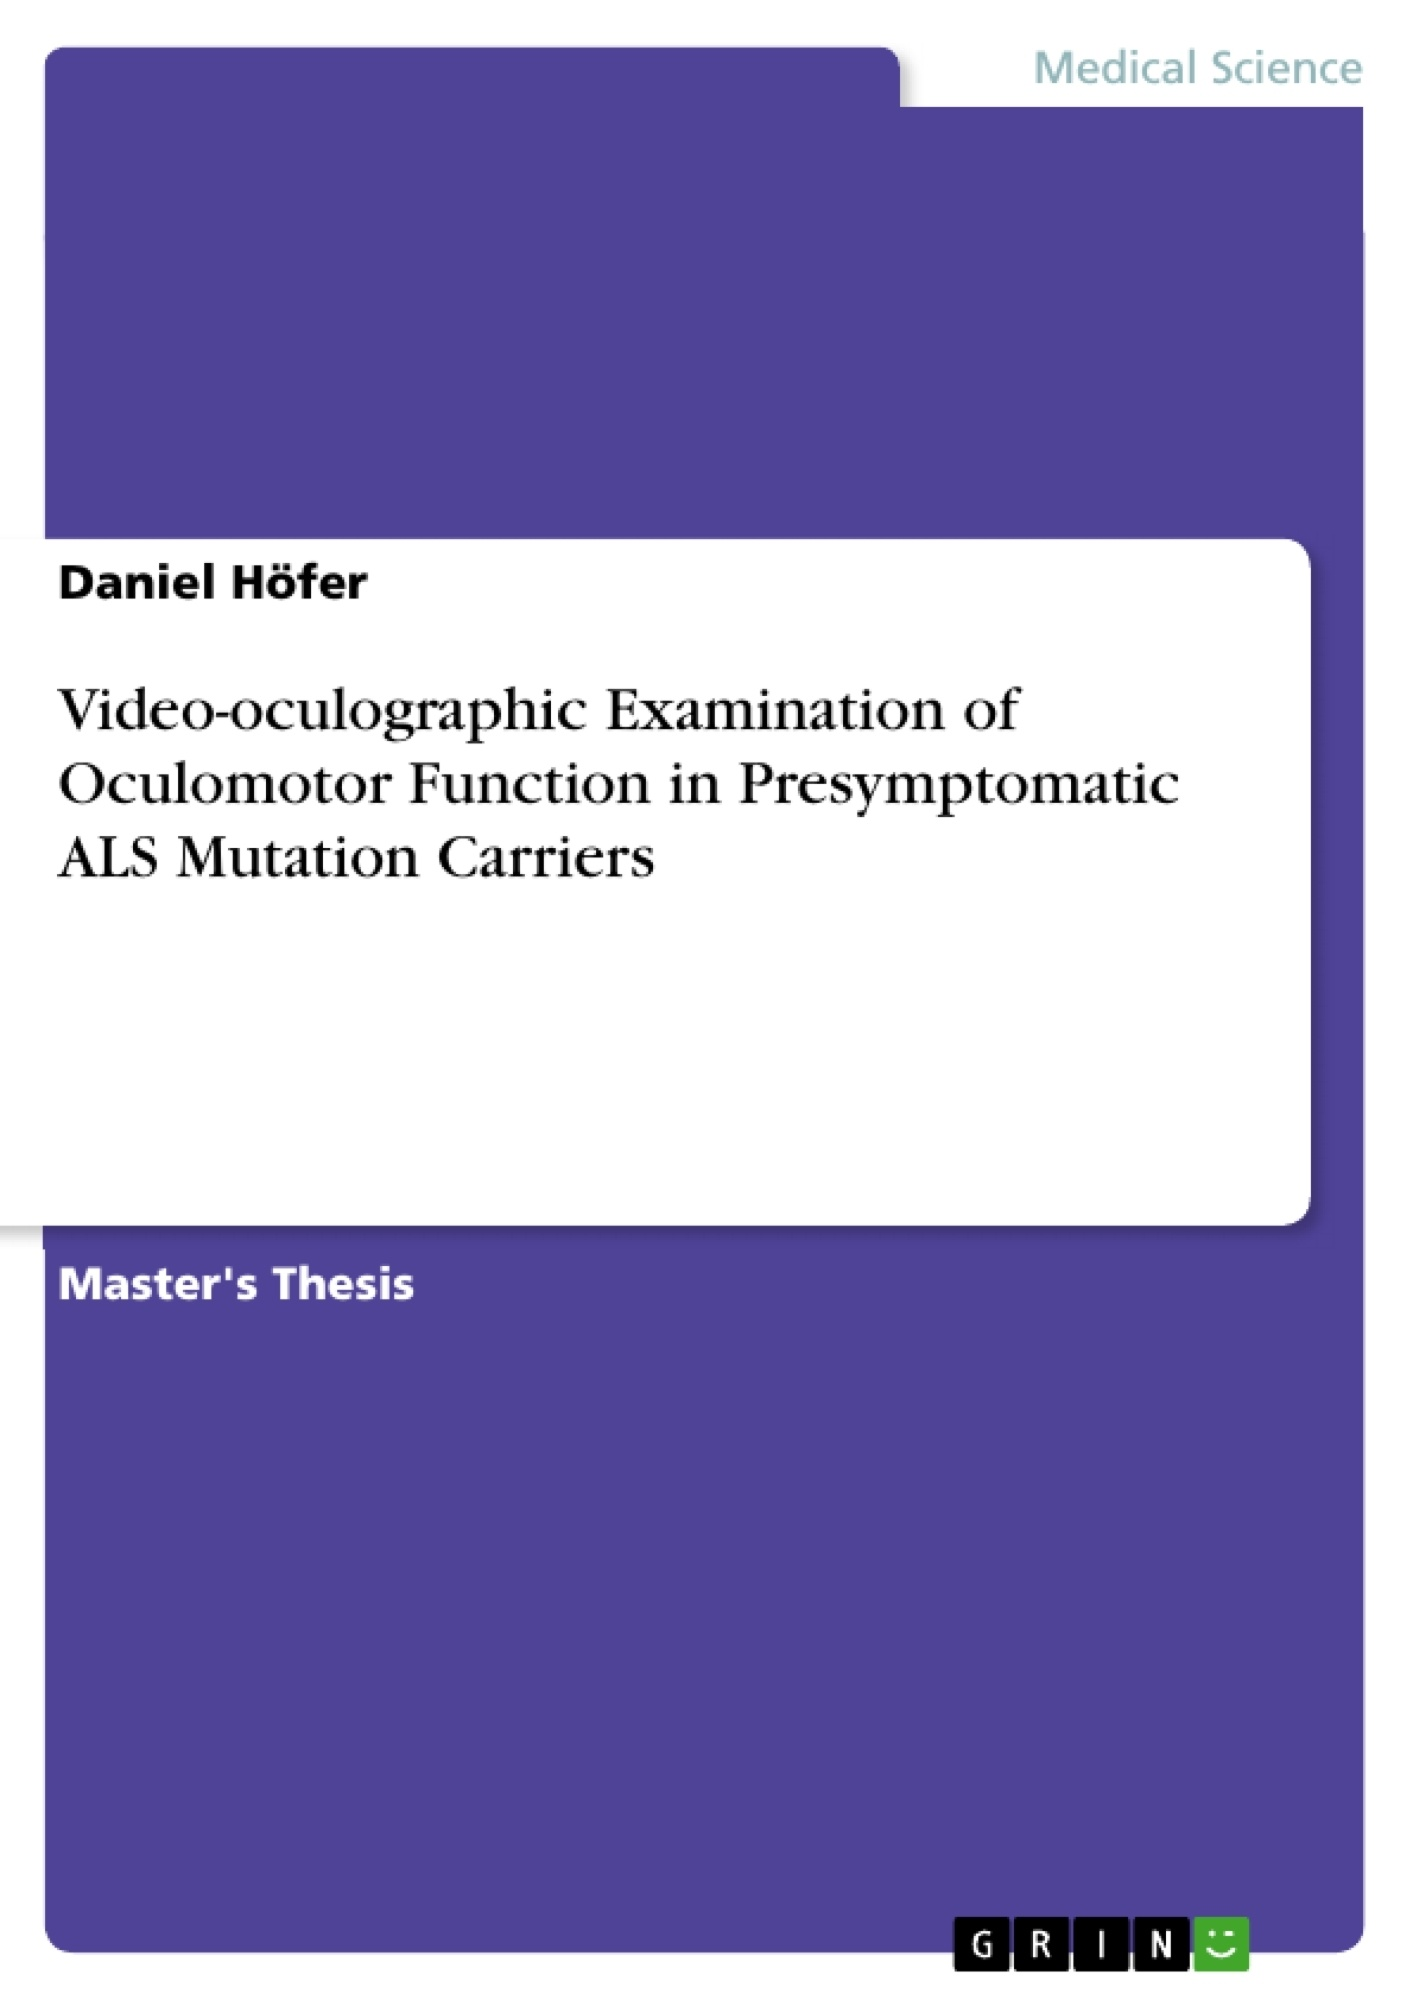 Title: Video-oculographic Examination of Oculomotor Function in Presymptomatic ALS Mutation Carriers